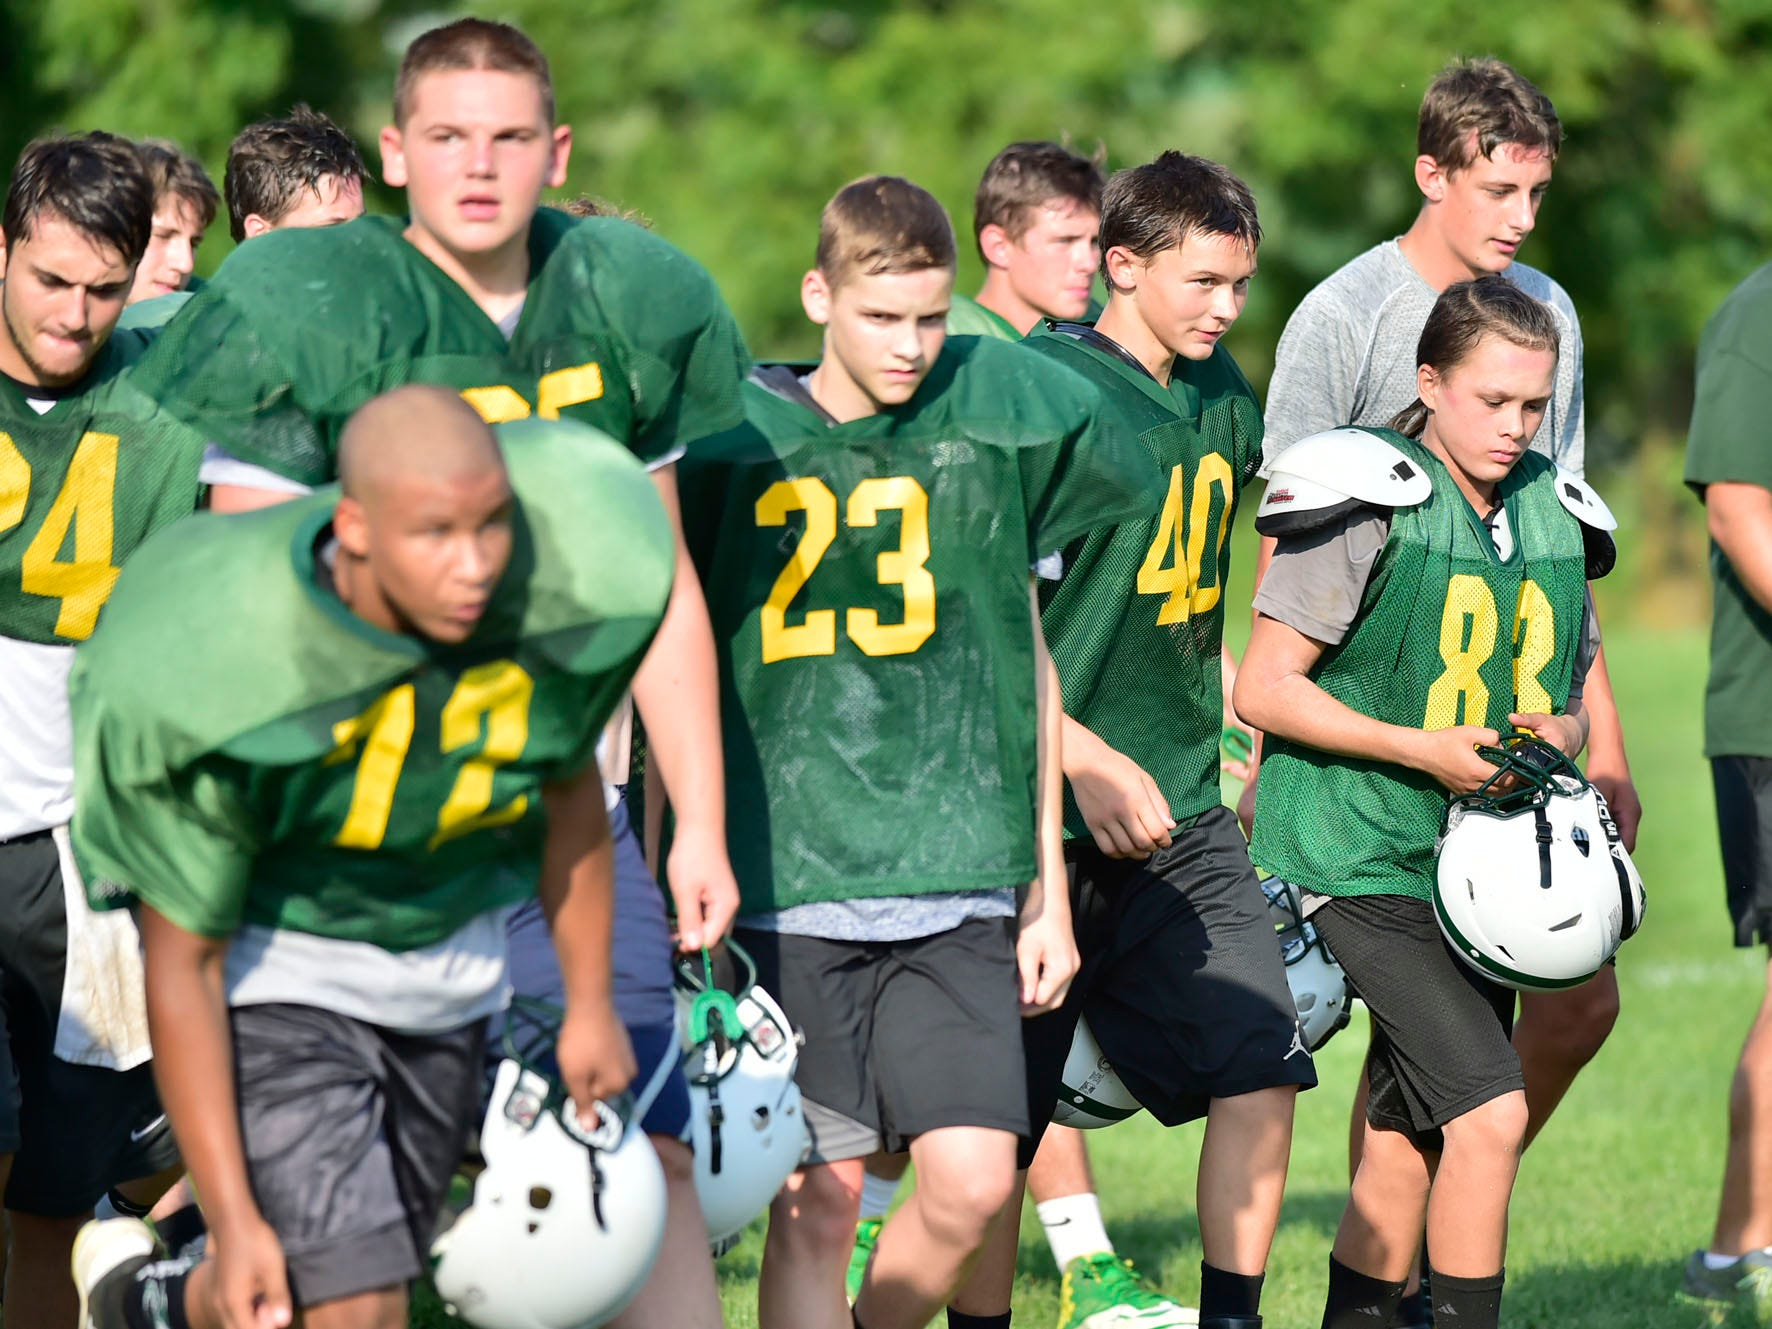 James Buchanan High School football players practice on Wednesday, August 8, 2018.